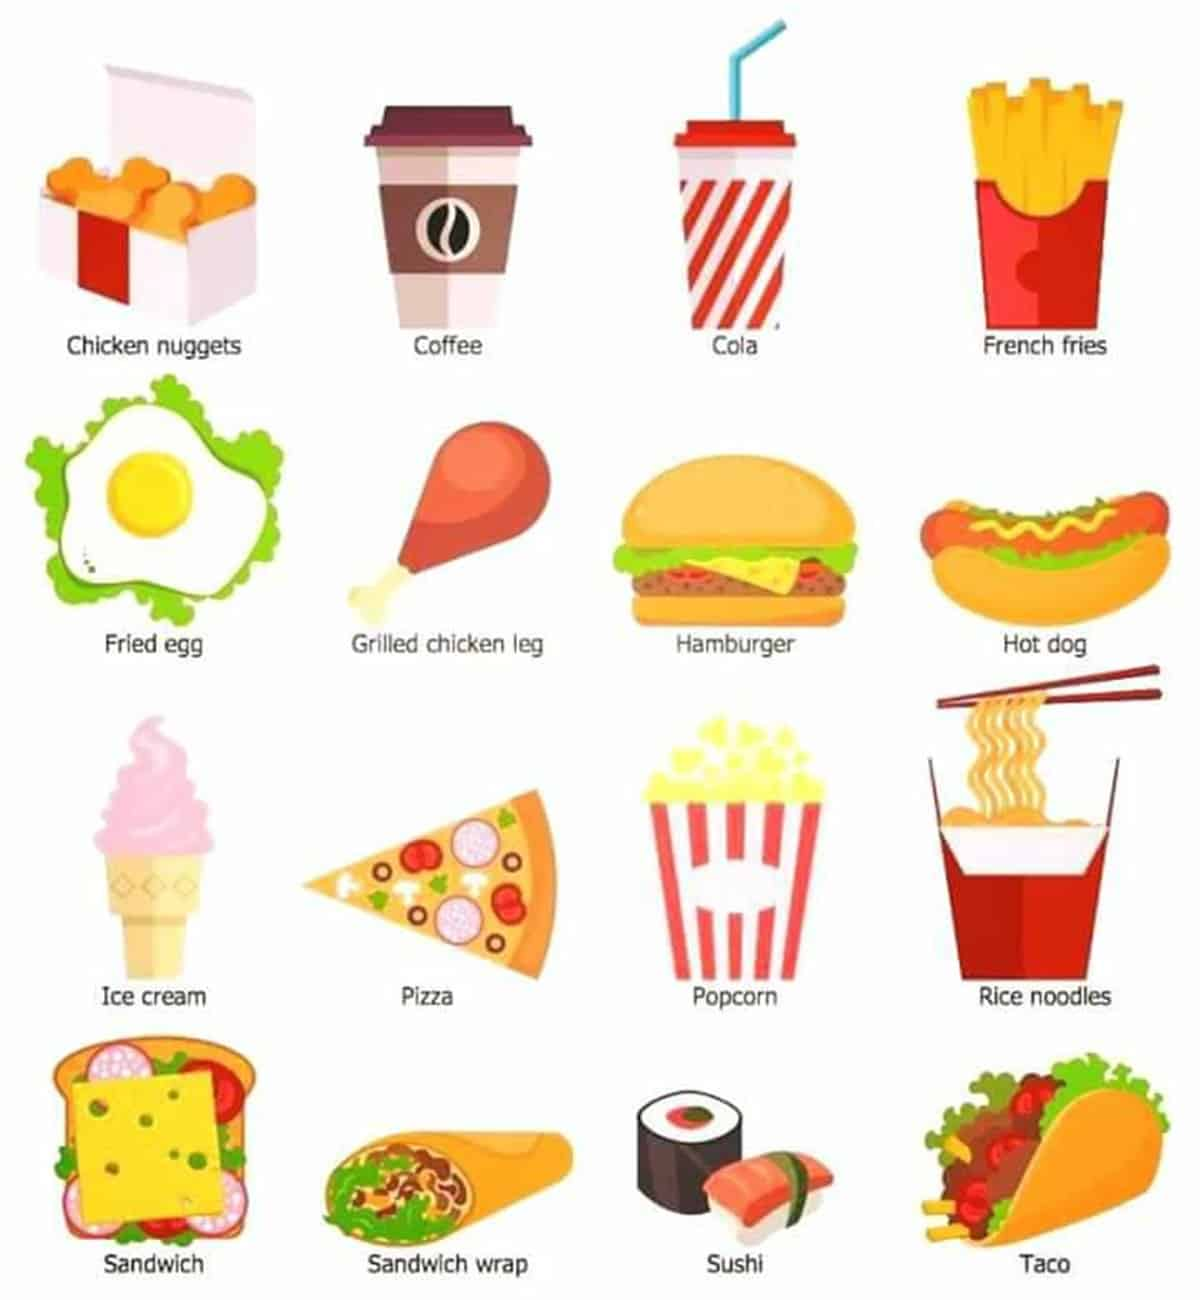 Food and Drinks Vocabulary in English: 500+ Items Illustrated 5